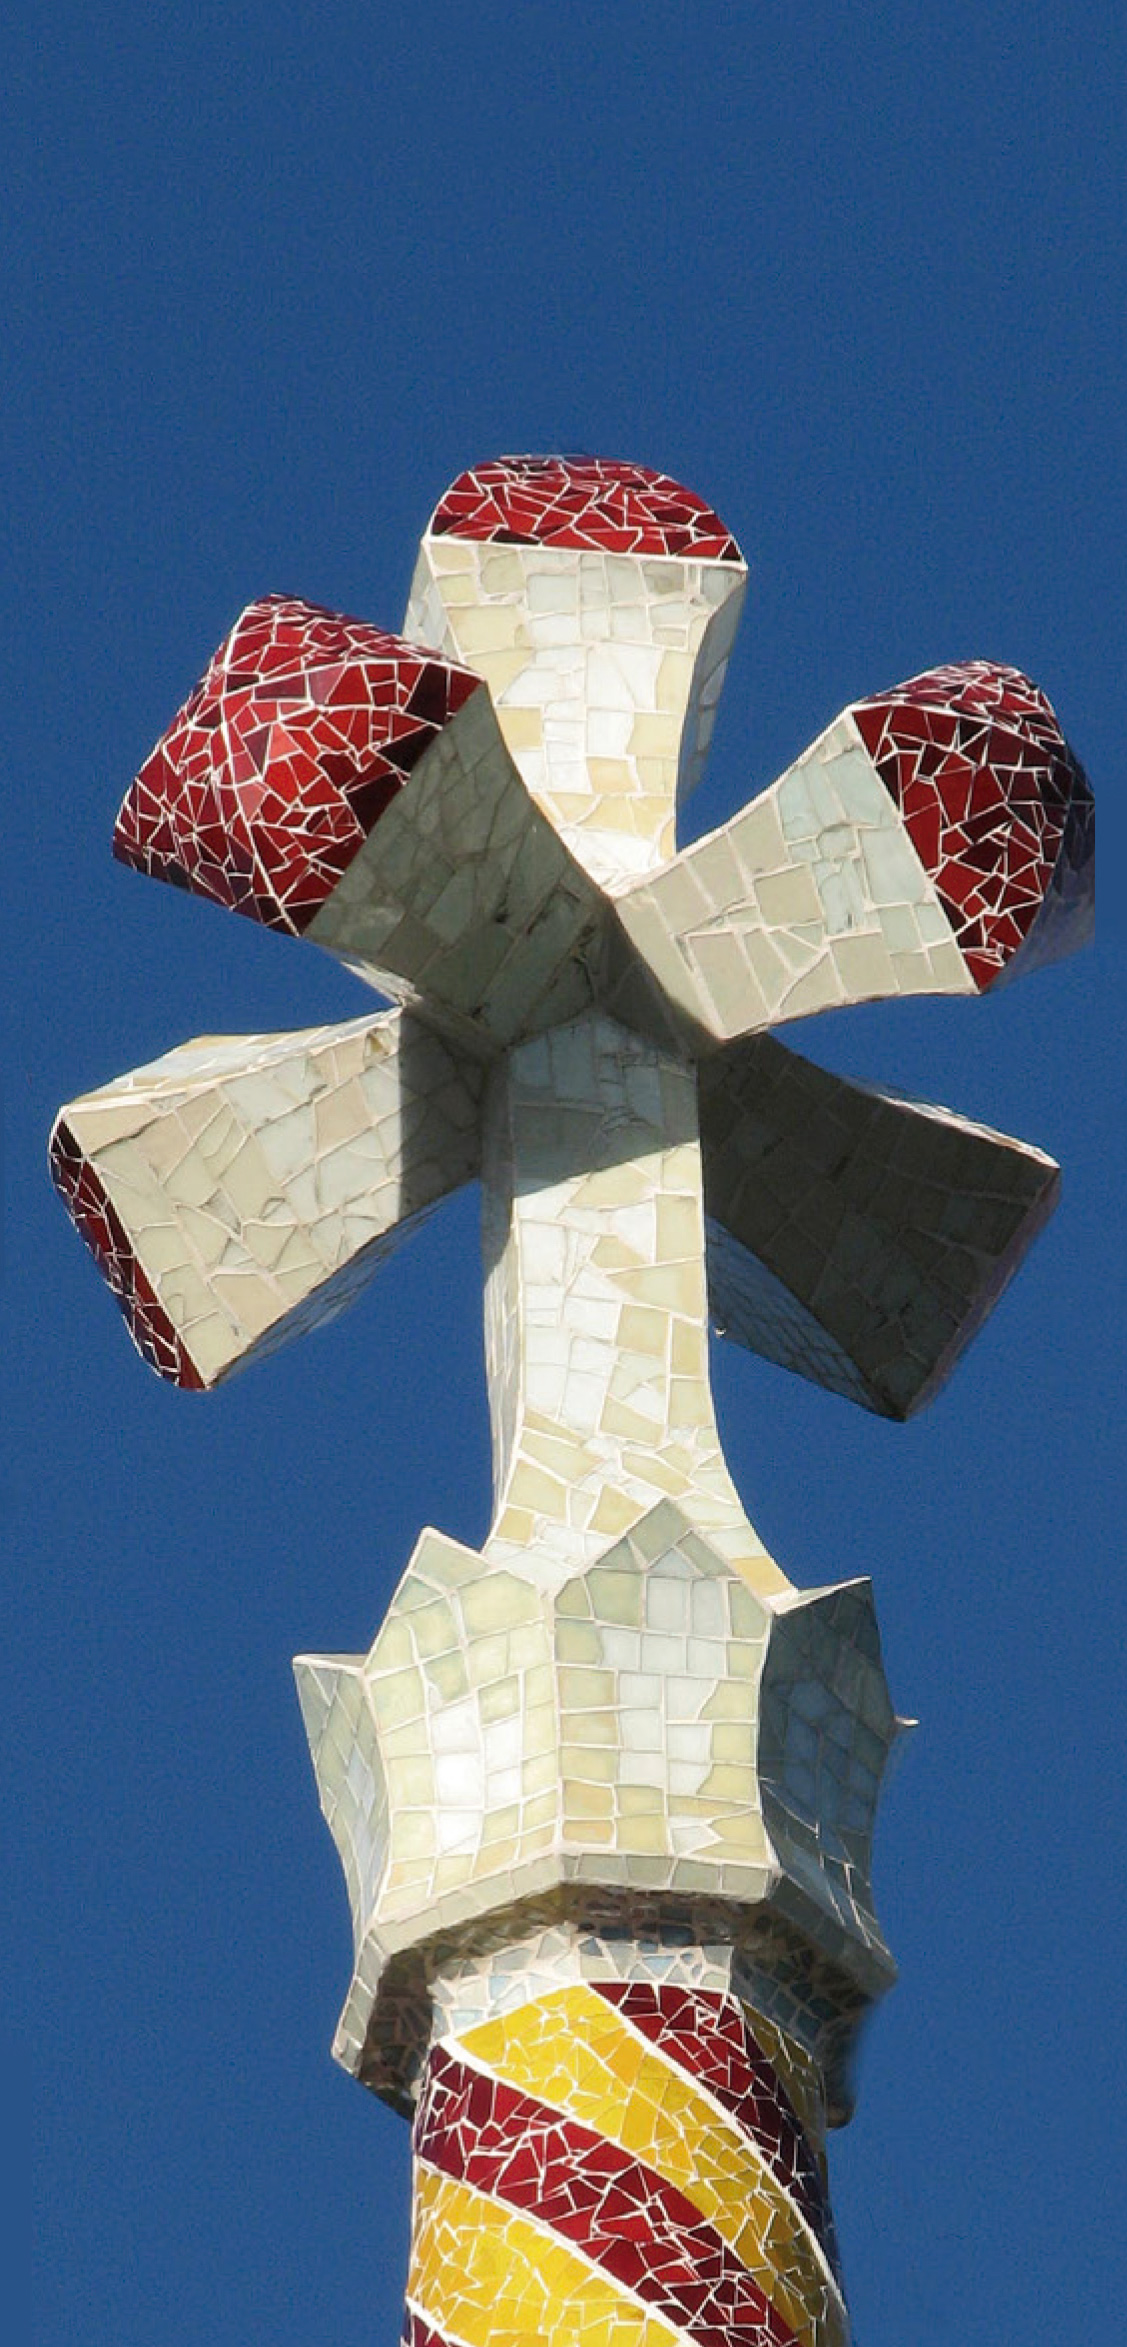 The Cross of the cypress